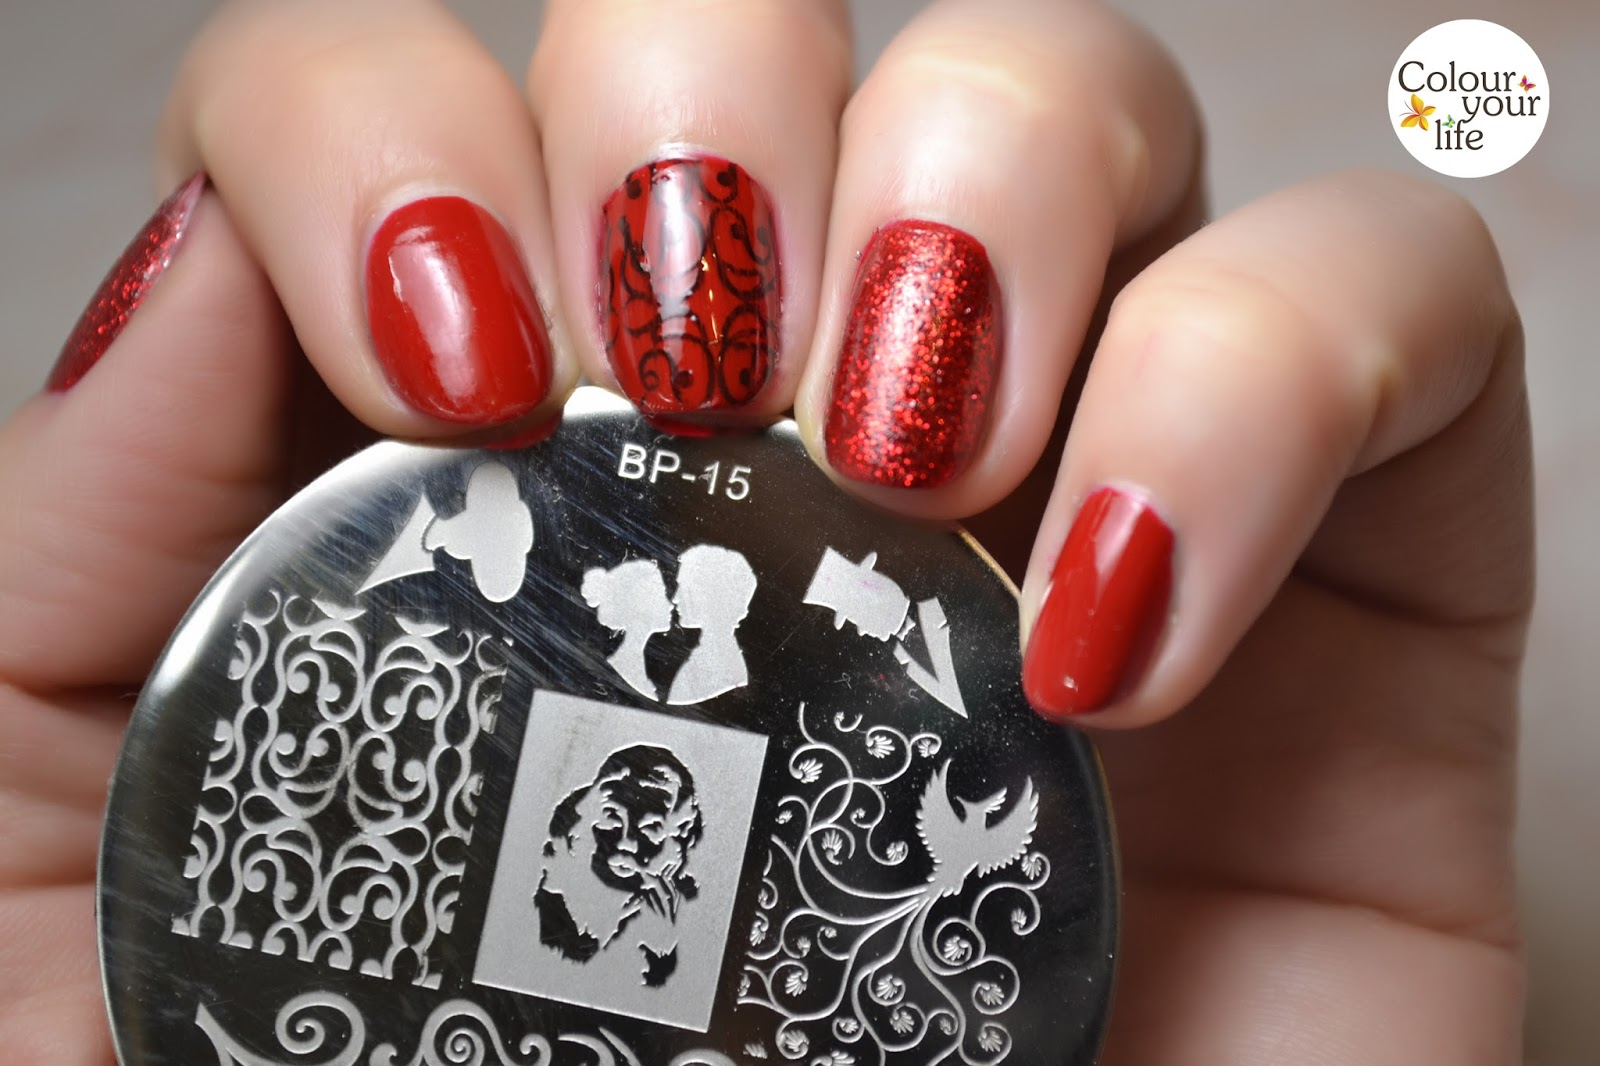 Colour your life: Red nails for New Years Eve